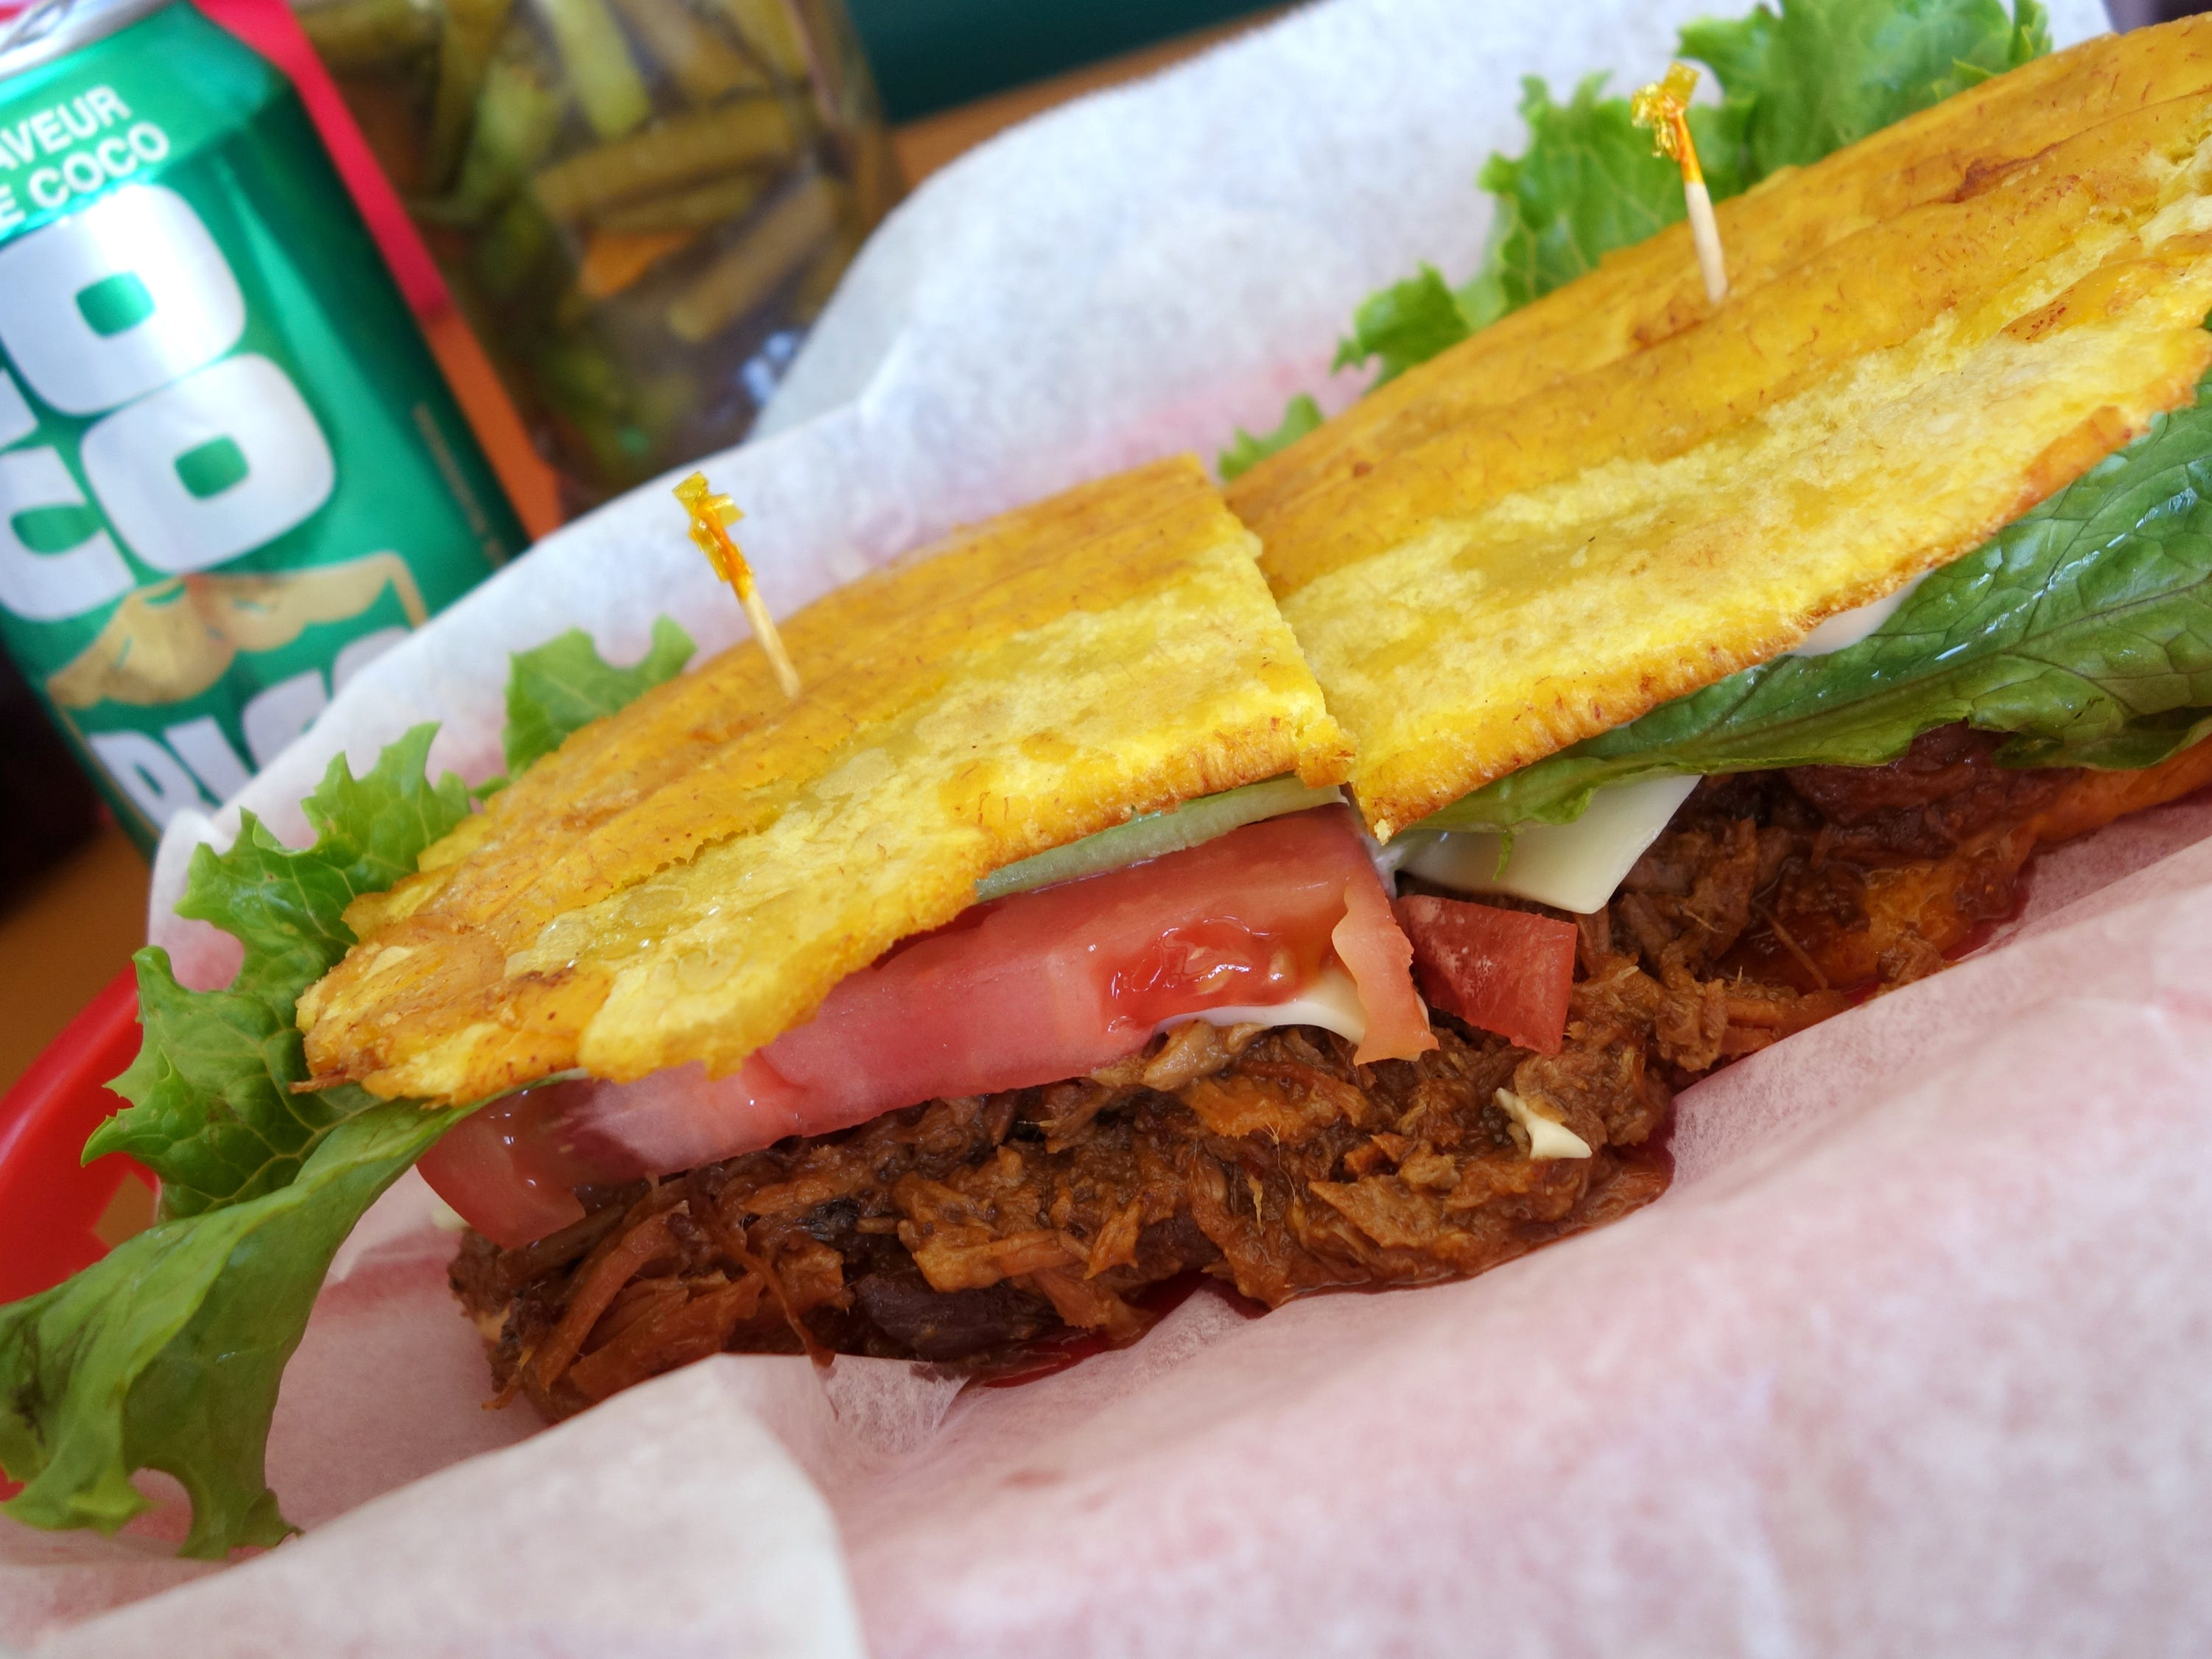 Jibarito with roasted pork, cheese, lettuce, tomato, mayonnaise and fried plantains at Millie's Cafe in Mesa.